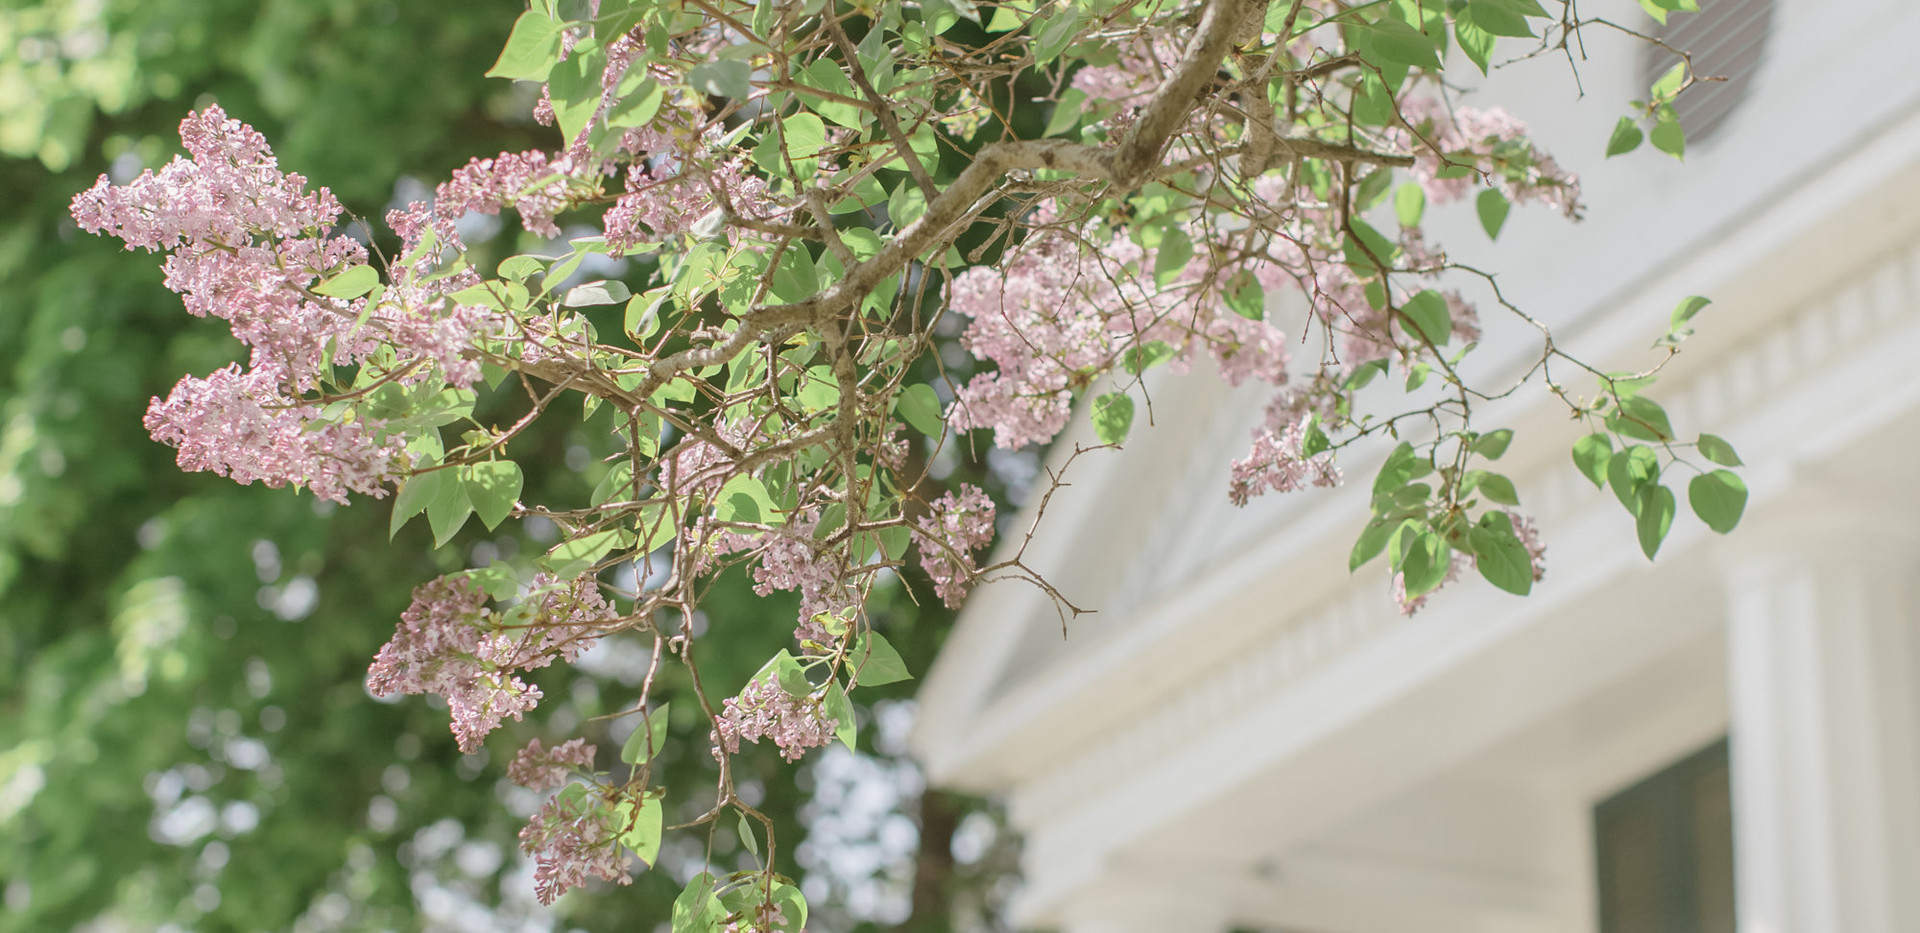 The lilacs in June